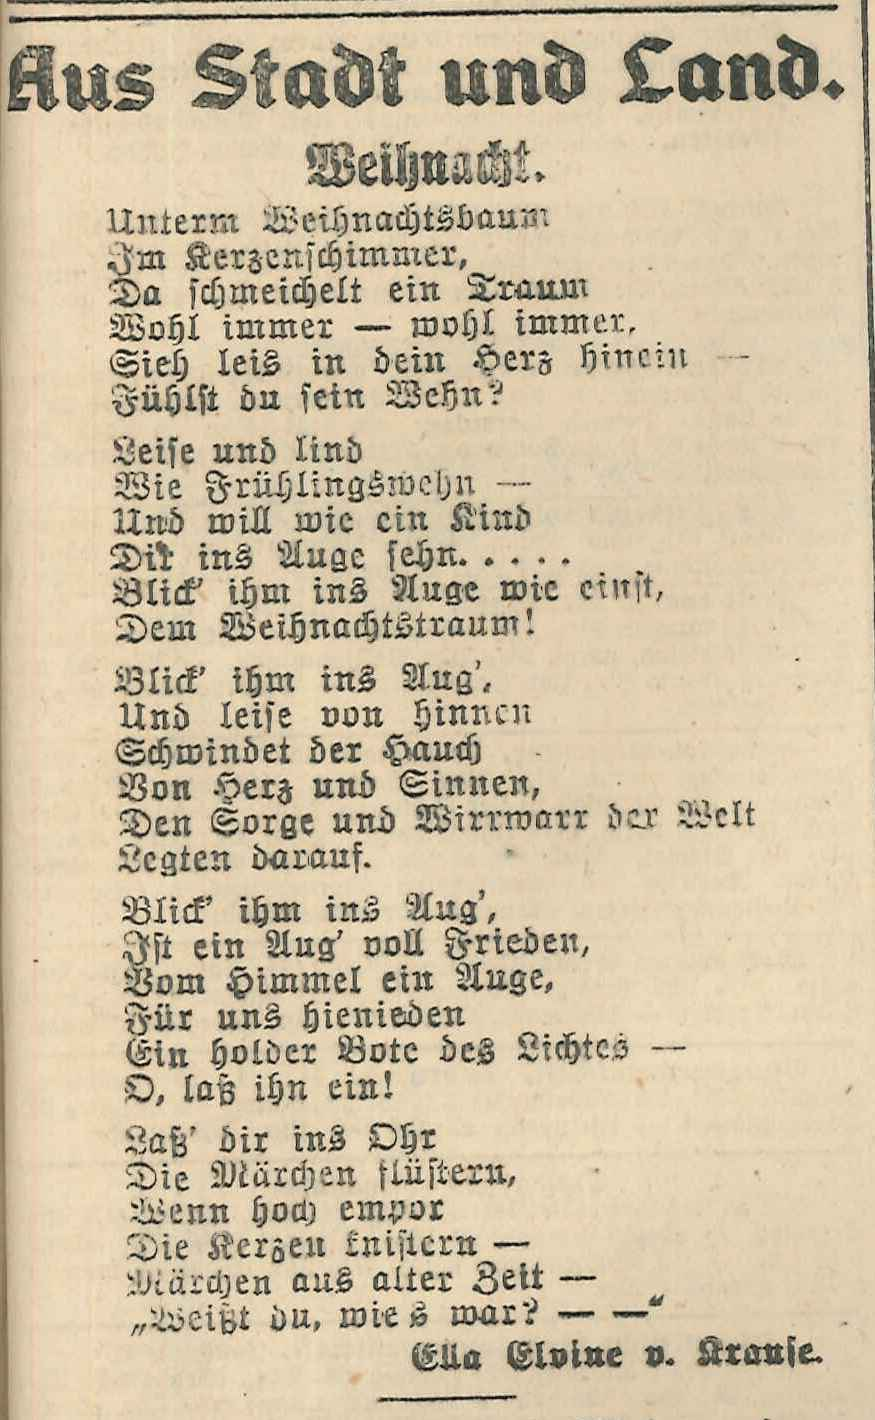 weihnachtsgedicht 1914 1918 ein rheinisches tagebuch. Black Bedroom Furniture Sets. Home Design Ideas